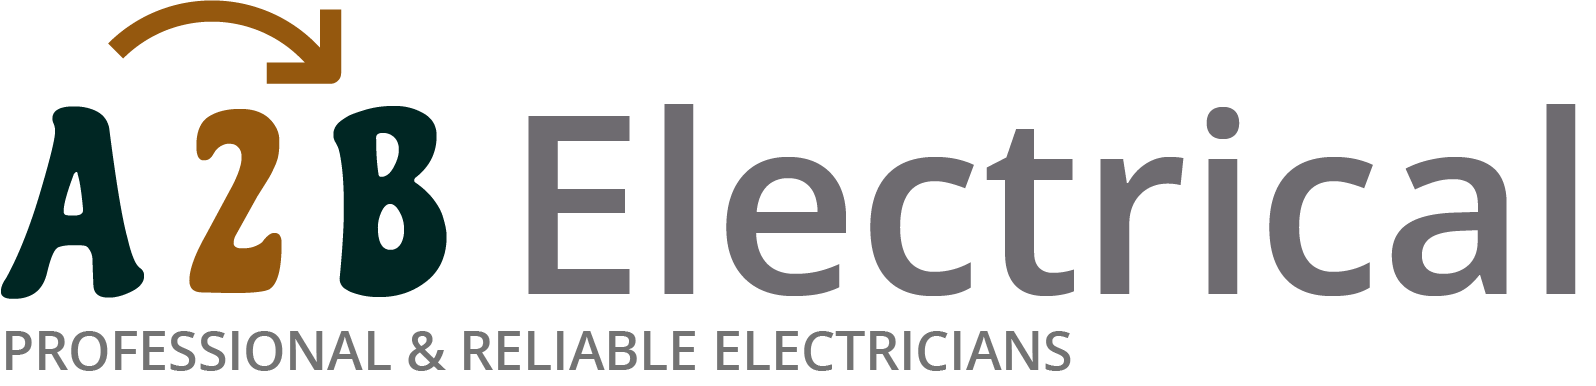 If you have electrical wiring problems in Penge, we can provide an electrician to have a look for you.